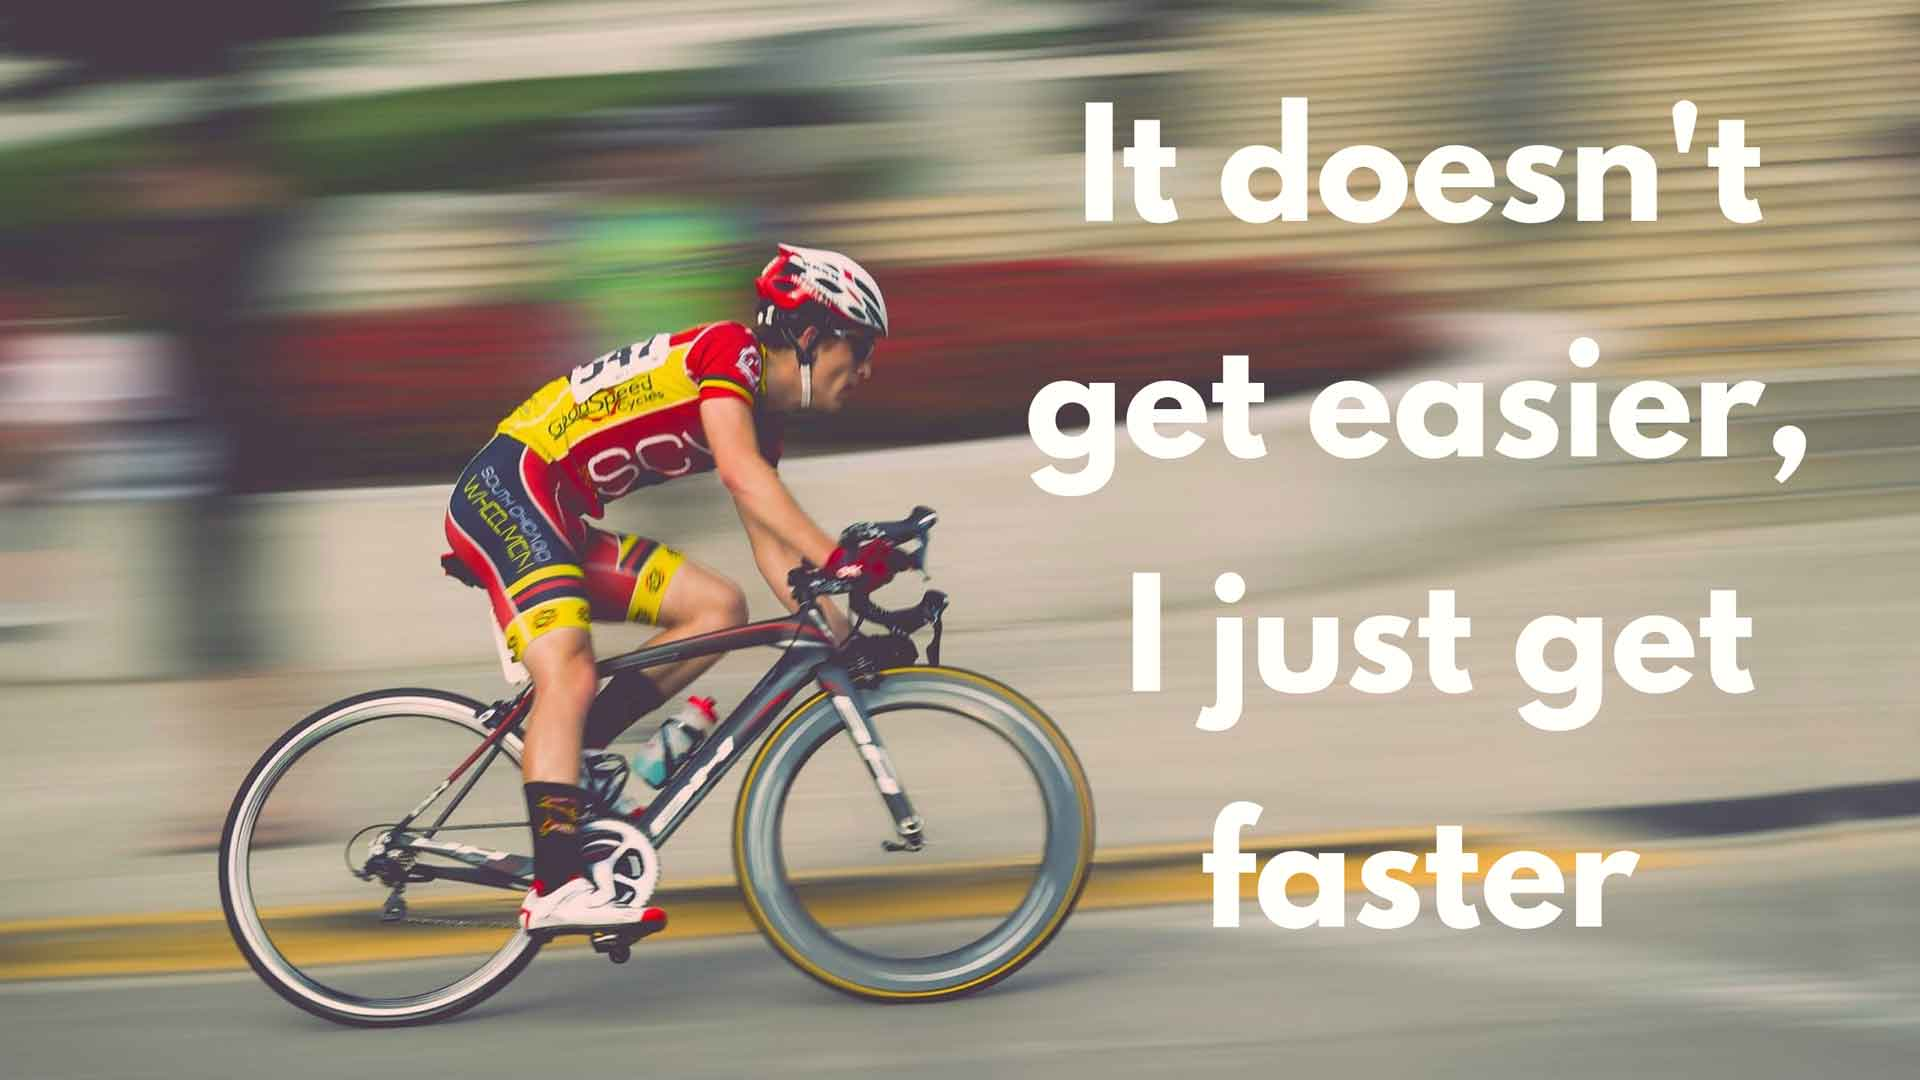 Insights -It doesn't get easier, I just get faster